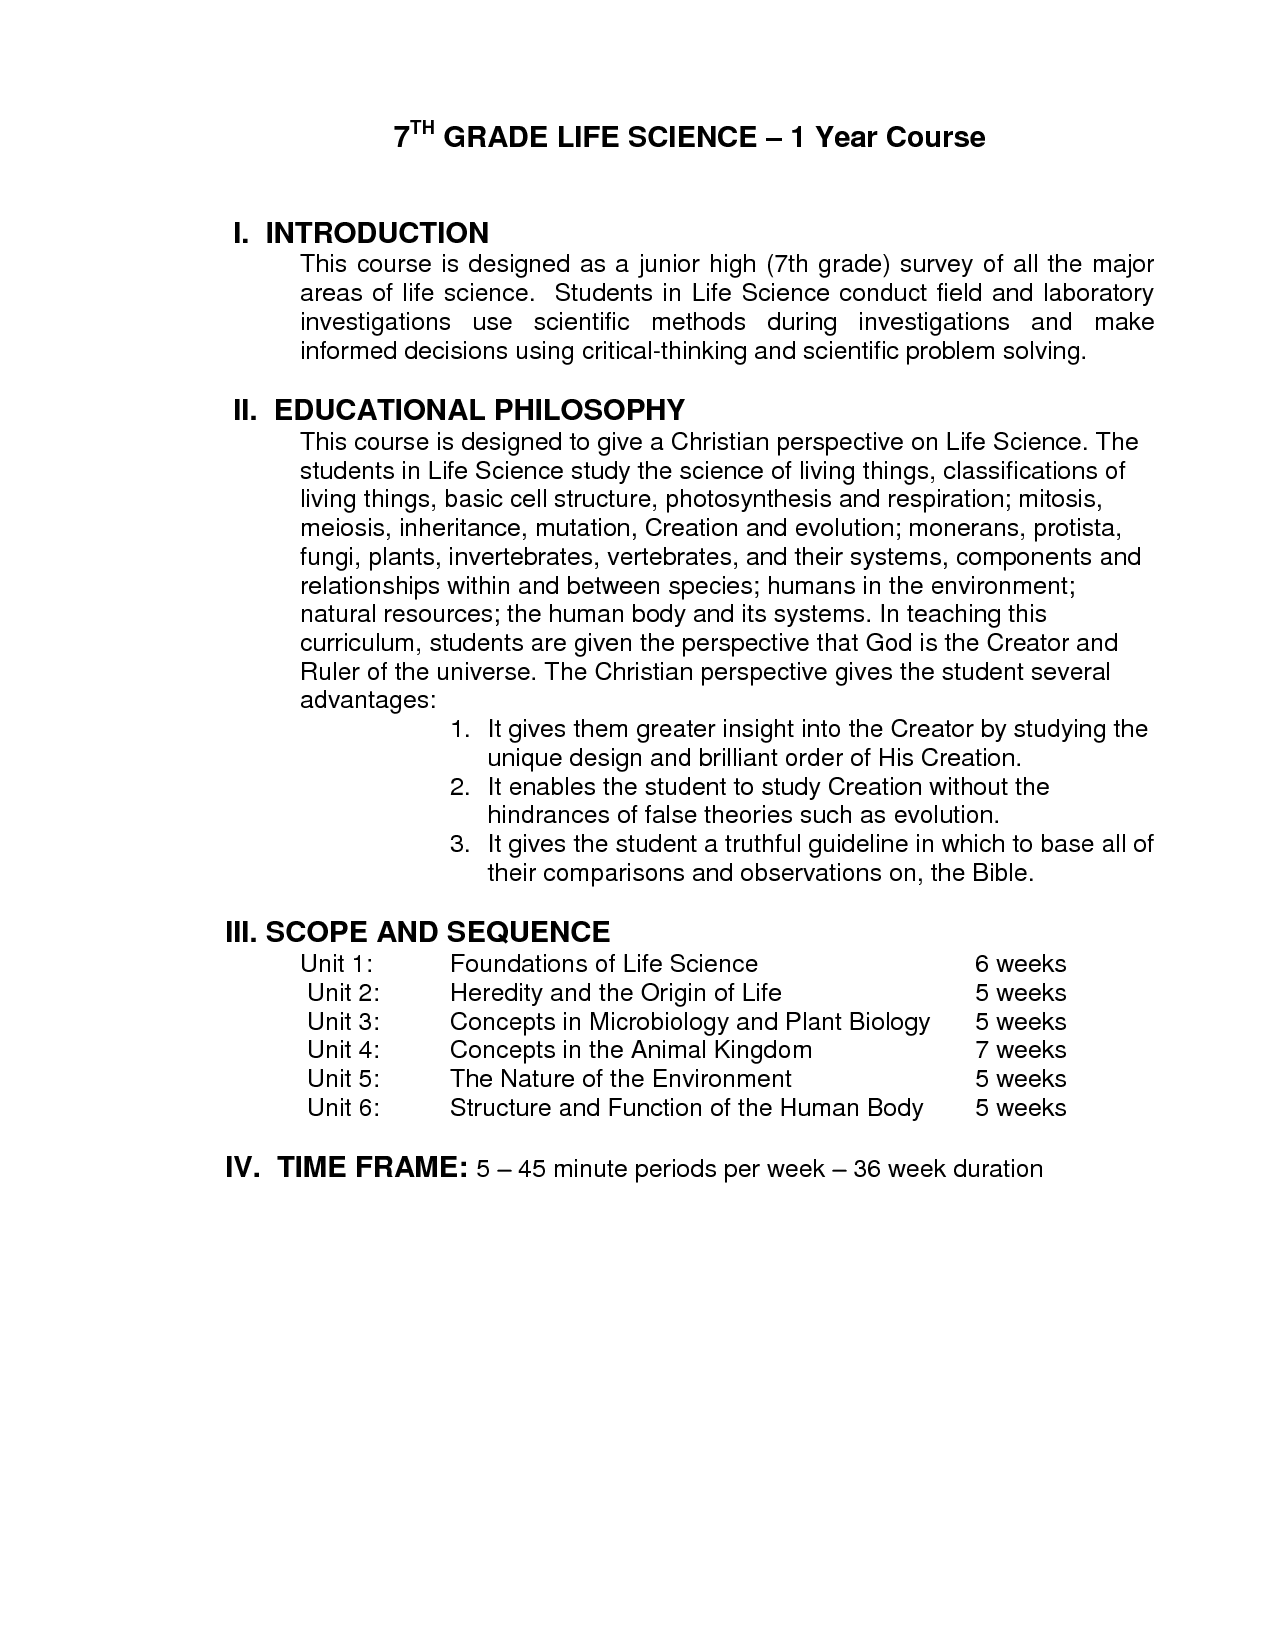 Critical Thinking Worksheets For 7th Grade